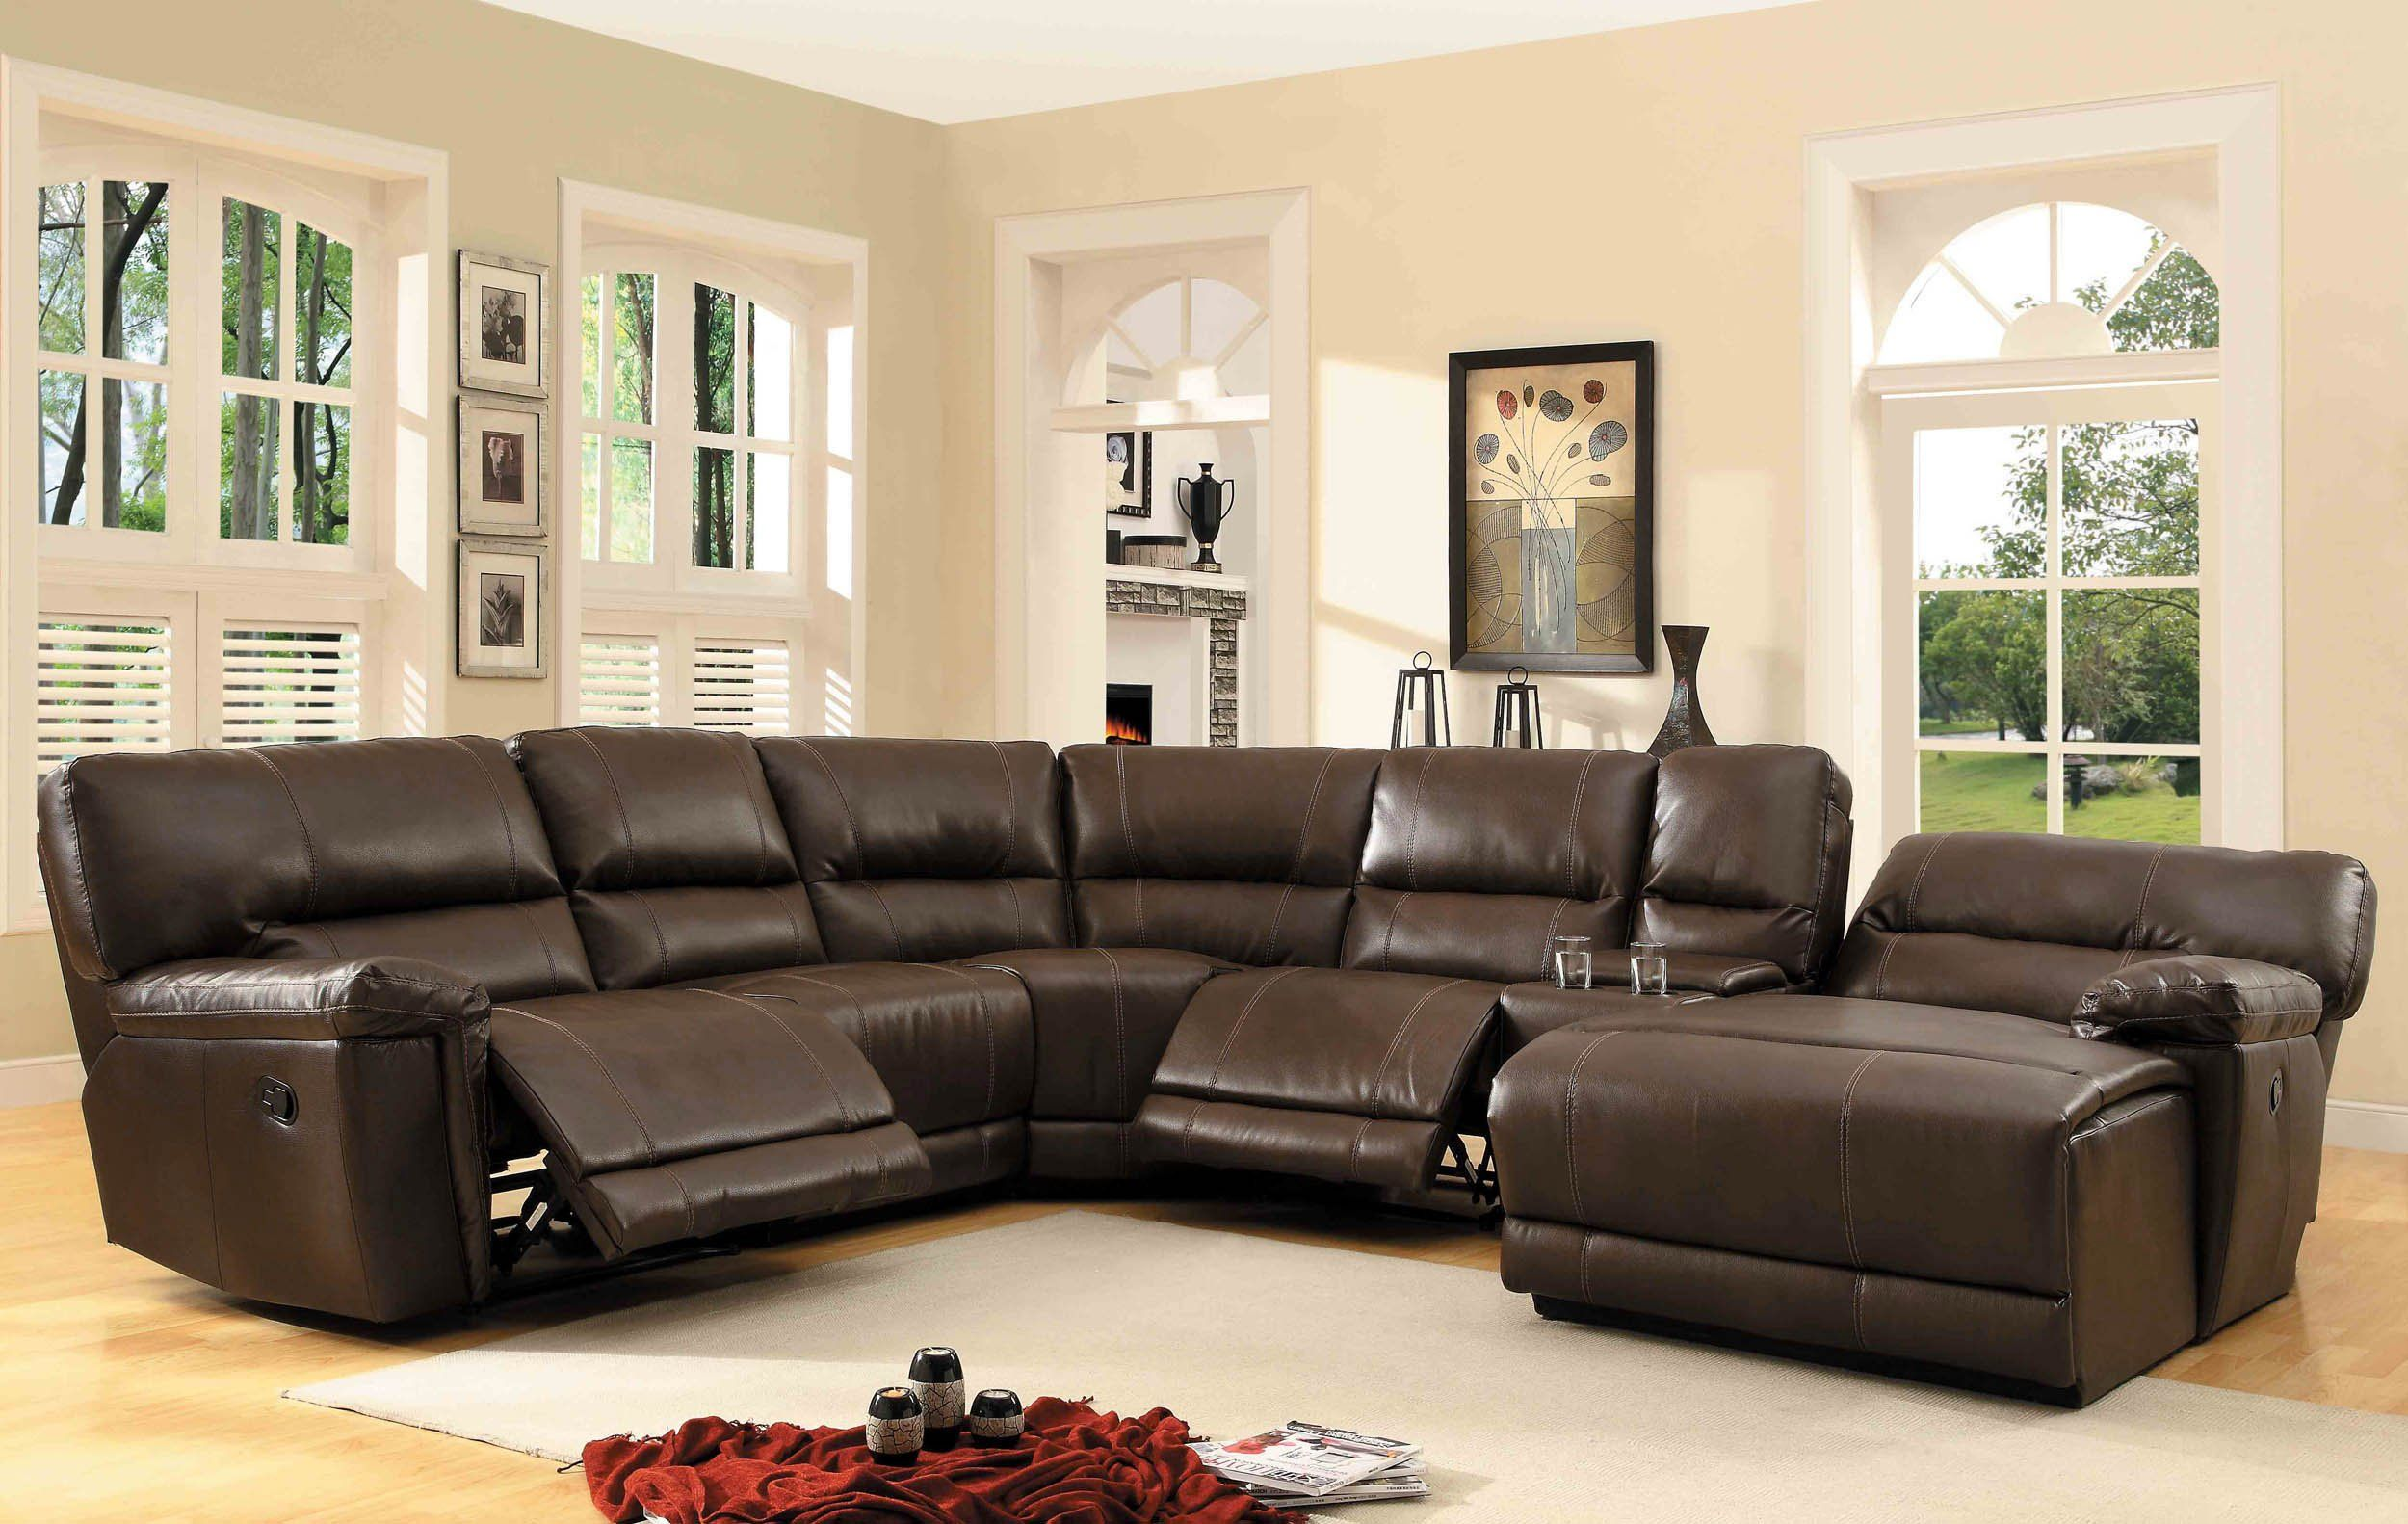 Robot Check Sectional Sofa With Recliner Sectional Sofa Comfy Reclining Sectional